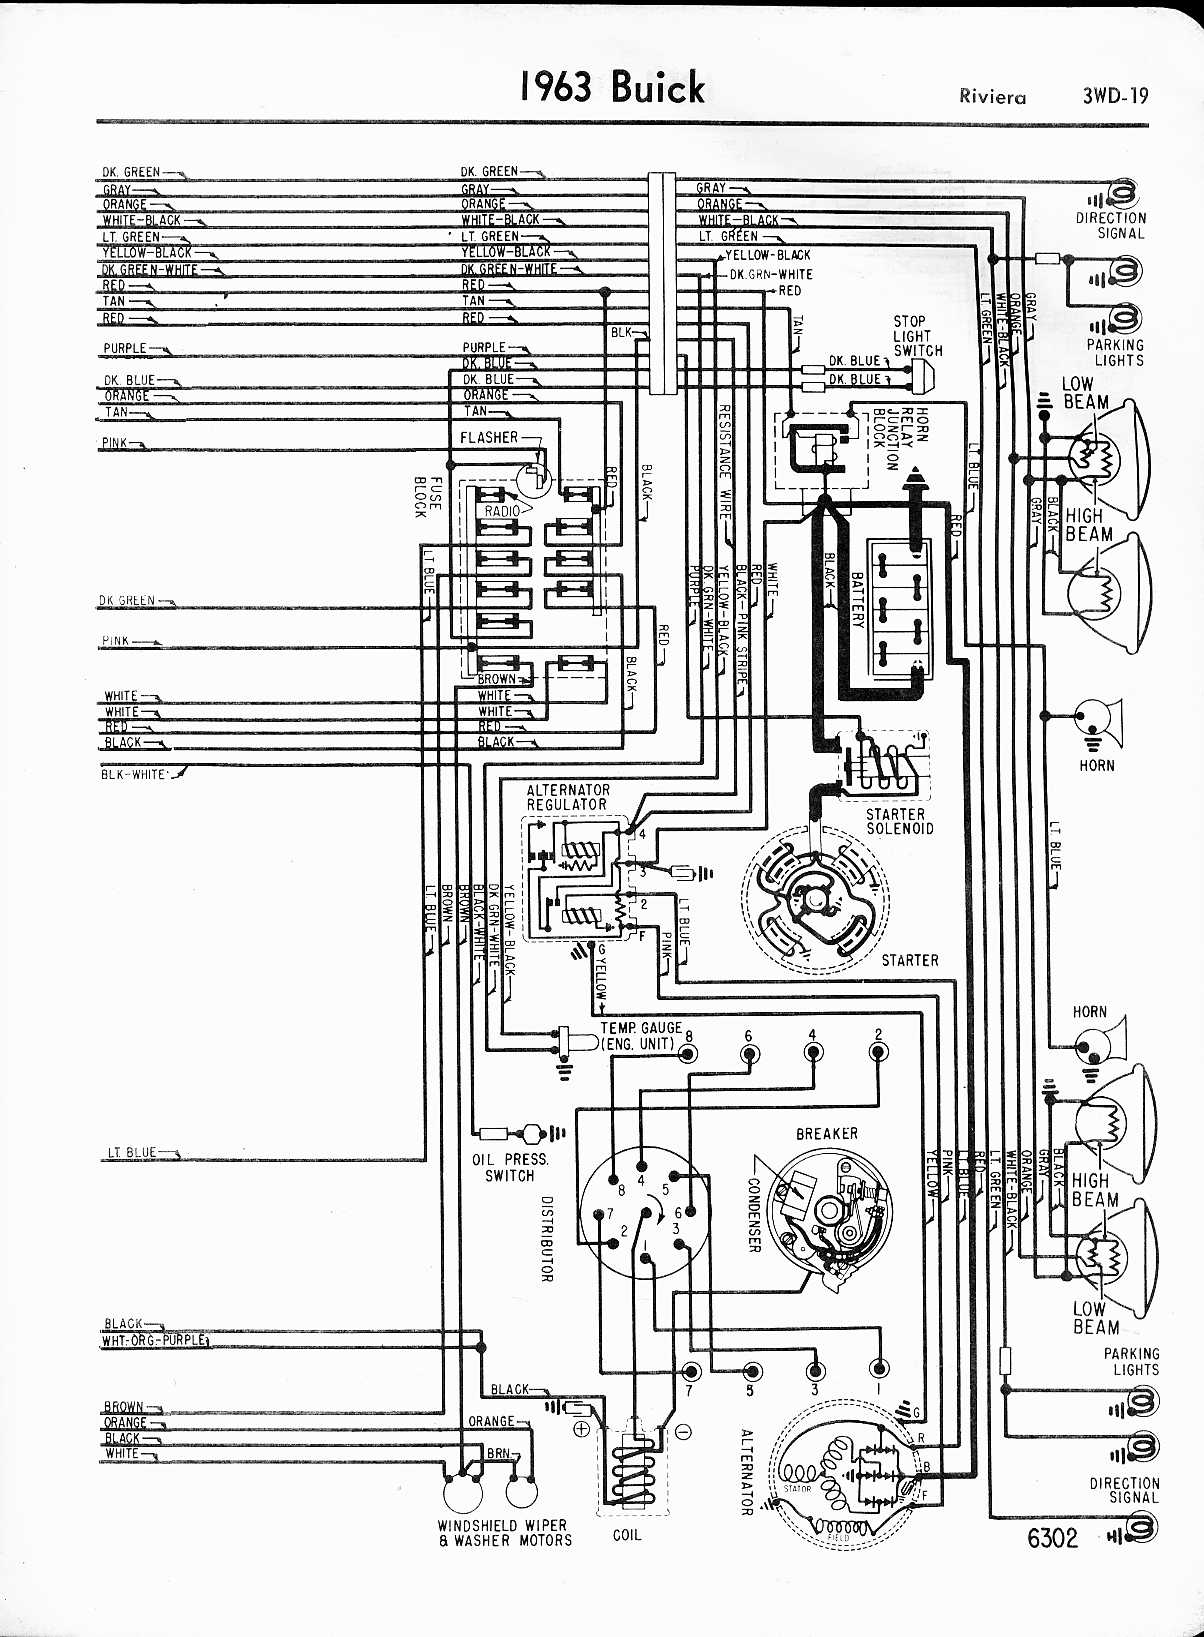 64 buick skylark fuse box diagram   33 wiring diagram